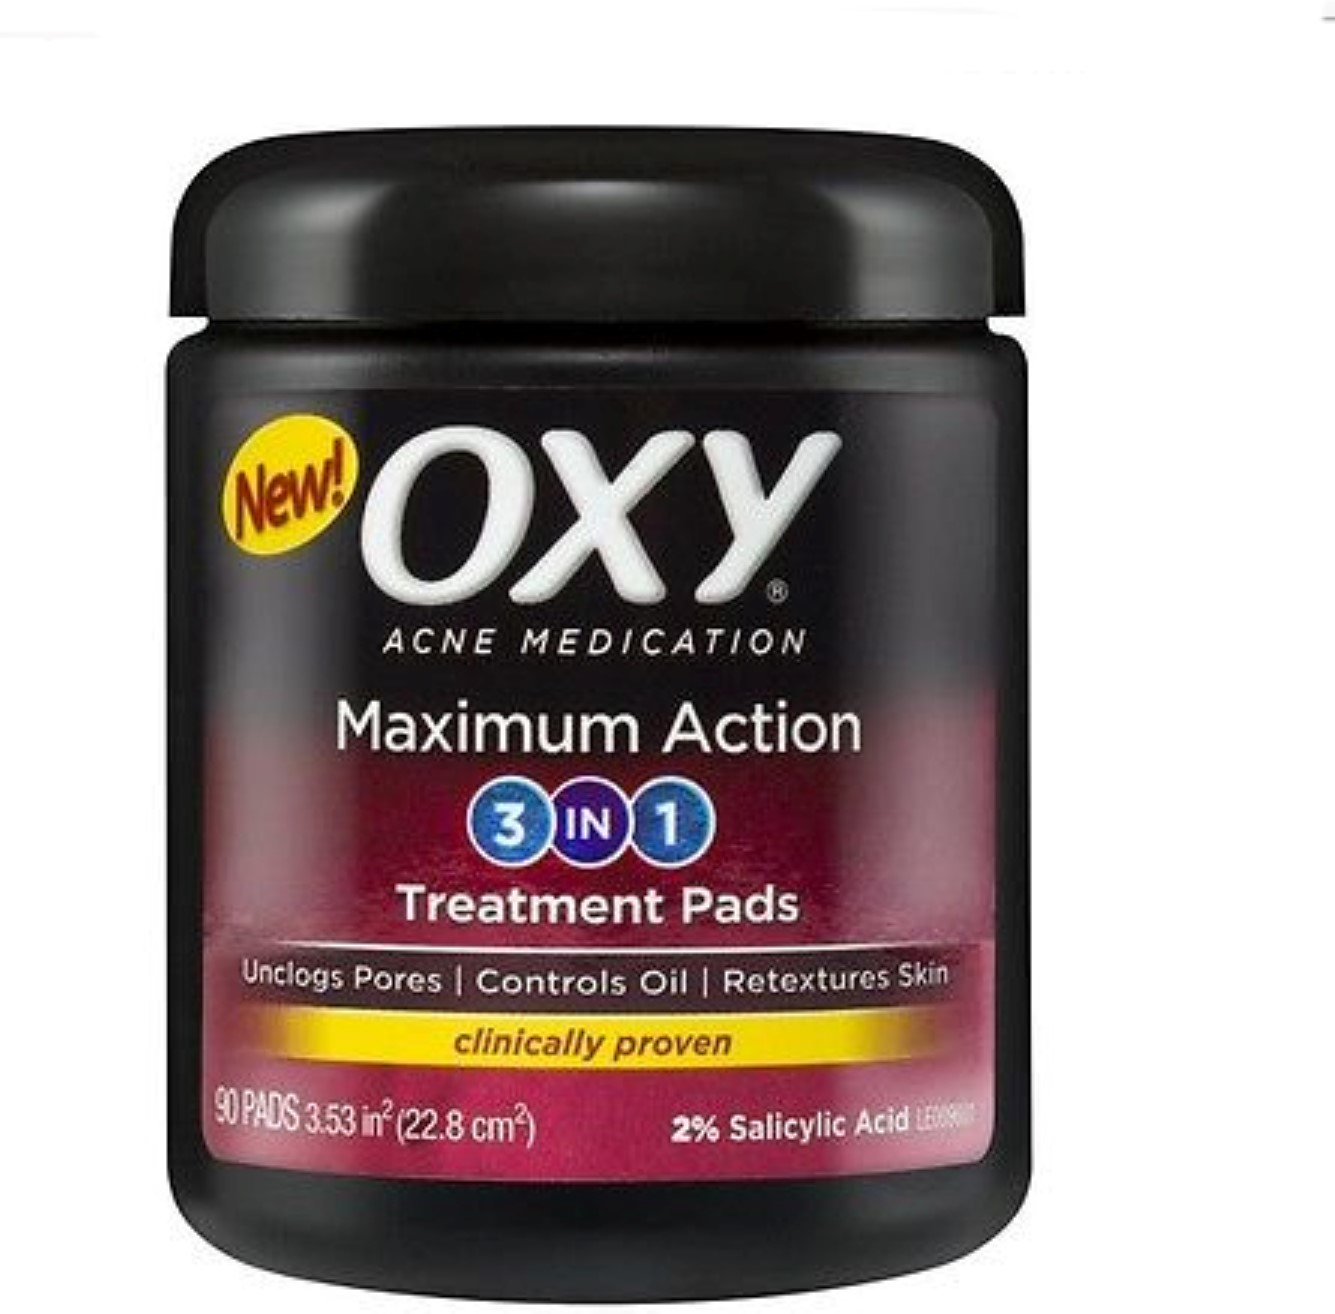 OXY Maximum Action 3-In-1 Treatment Pads 90 ea (Pack of 2) Make Up For Ever Extreme Cleanser Balancing Cleansing Dry Oil 200ml/6.76oz